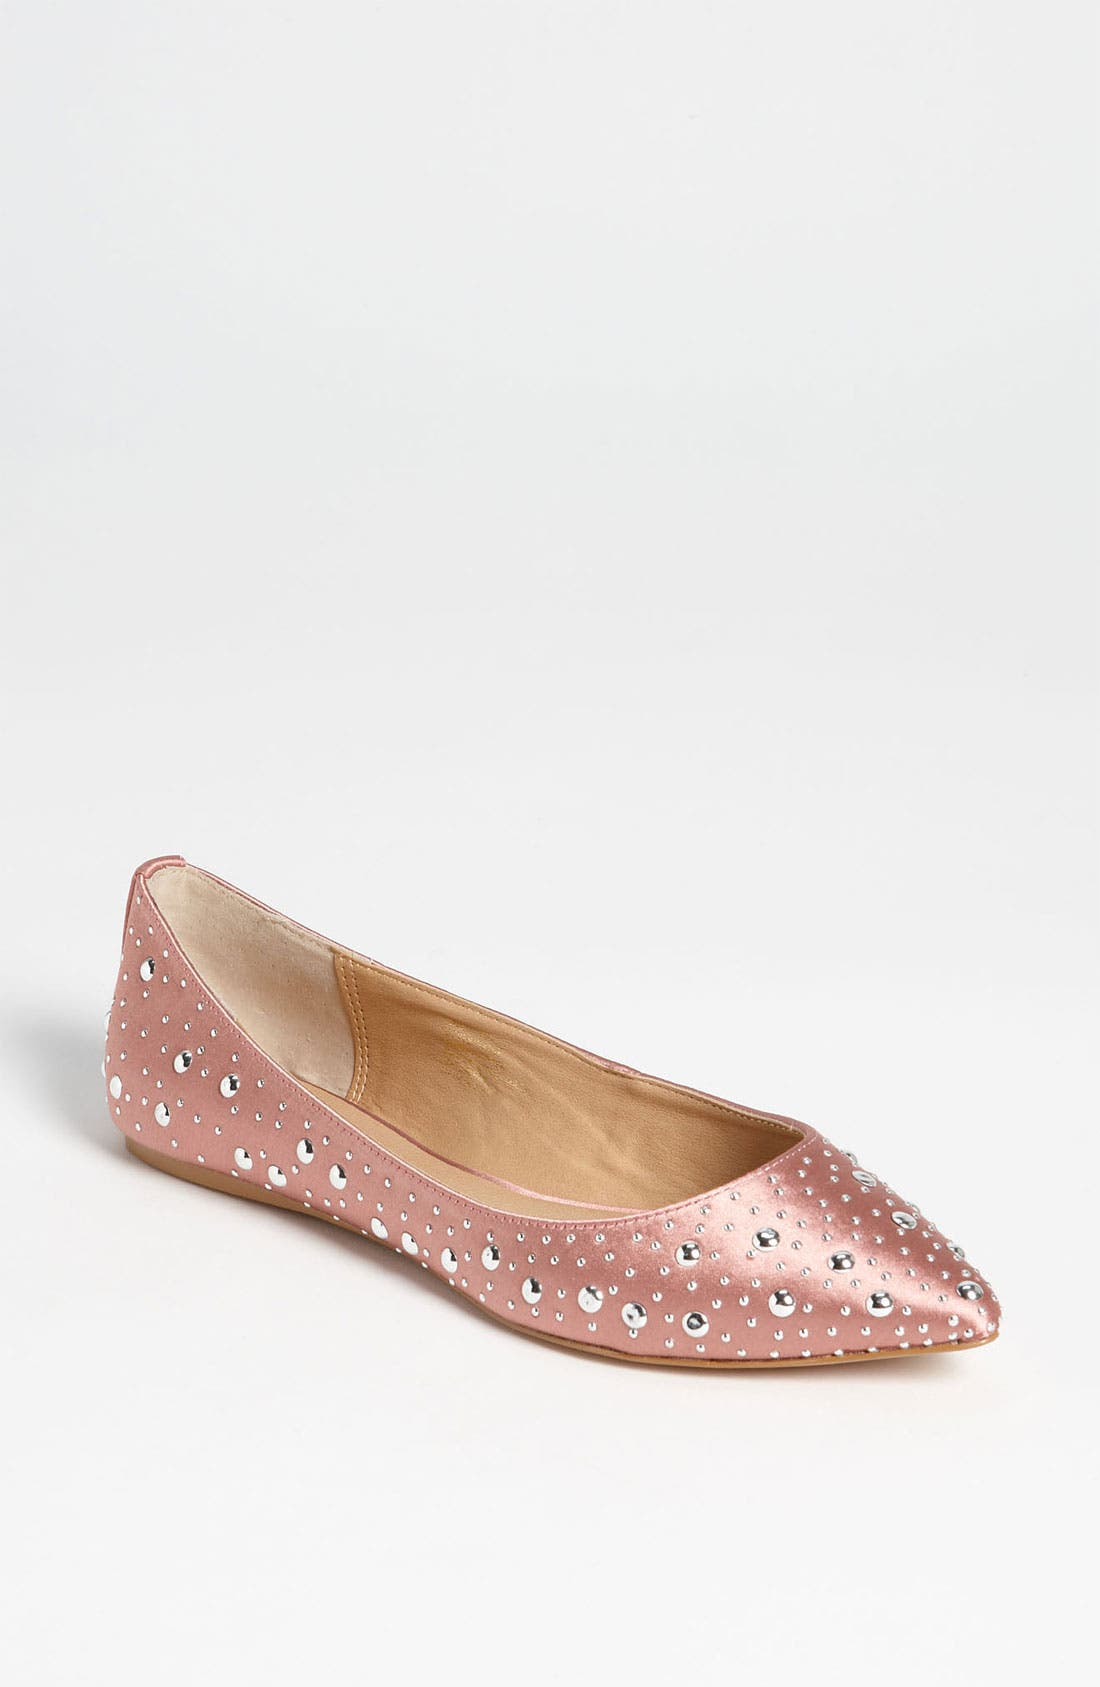 Main Image - Sole Society 'Sadie' Flat